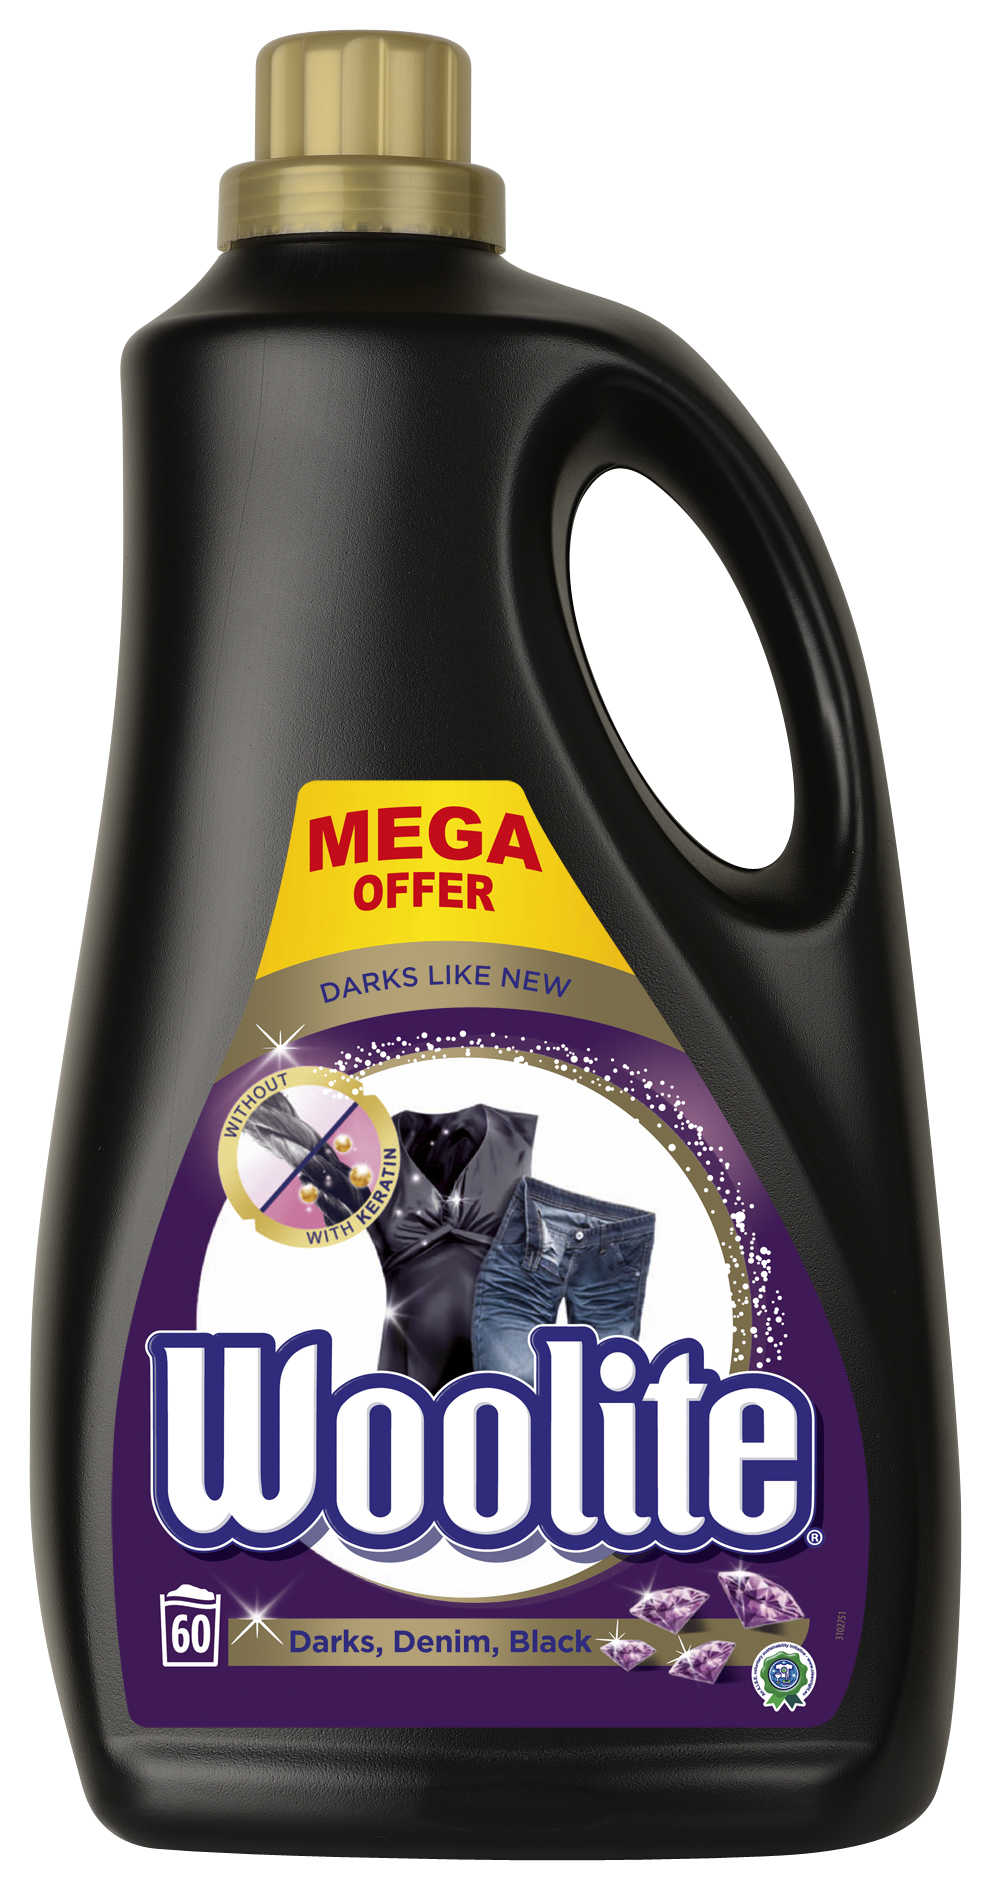 WOOLITE Dark Black  Denim 3.6 l (60 dávek) – prací gel